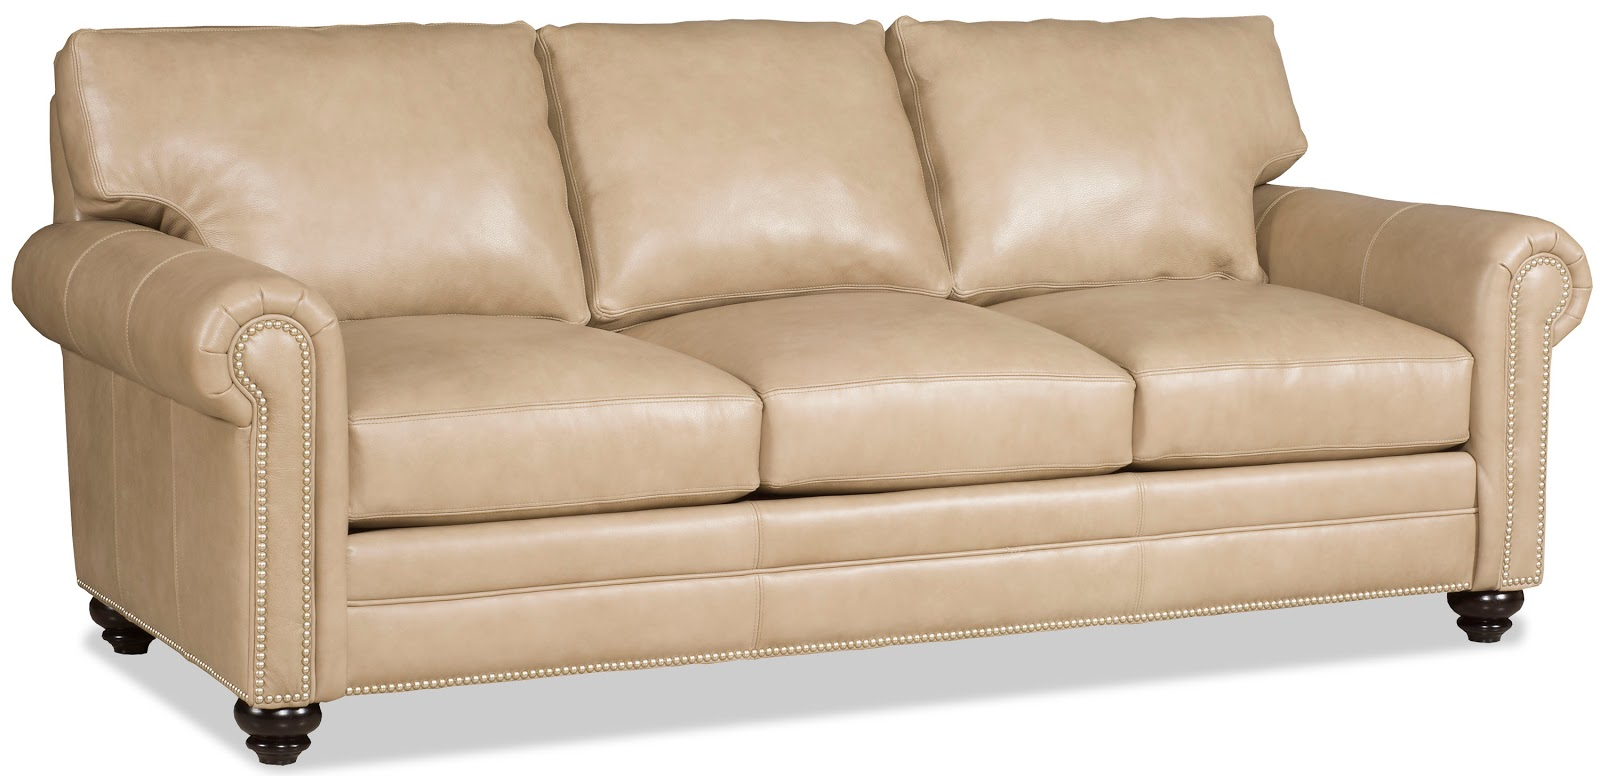 Beaux R'eves: February is a Great Month to Buy Furniture!